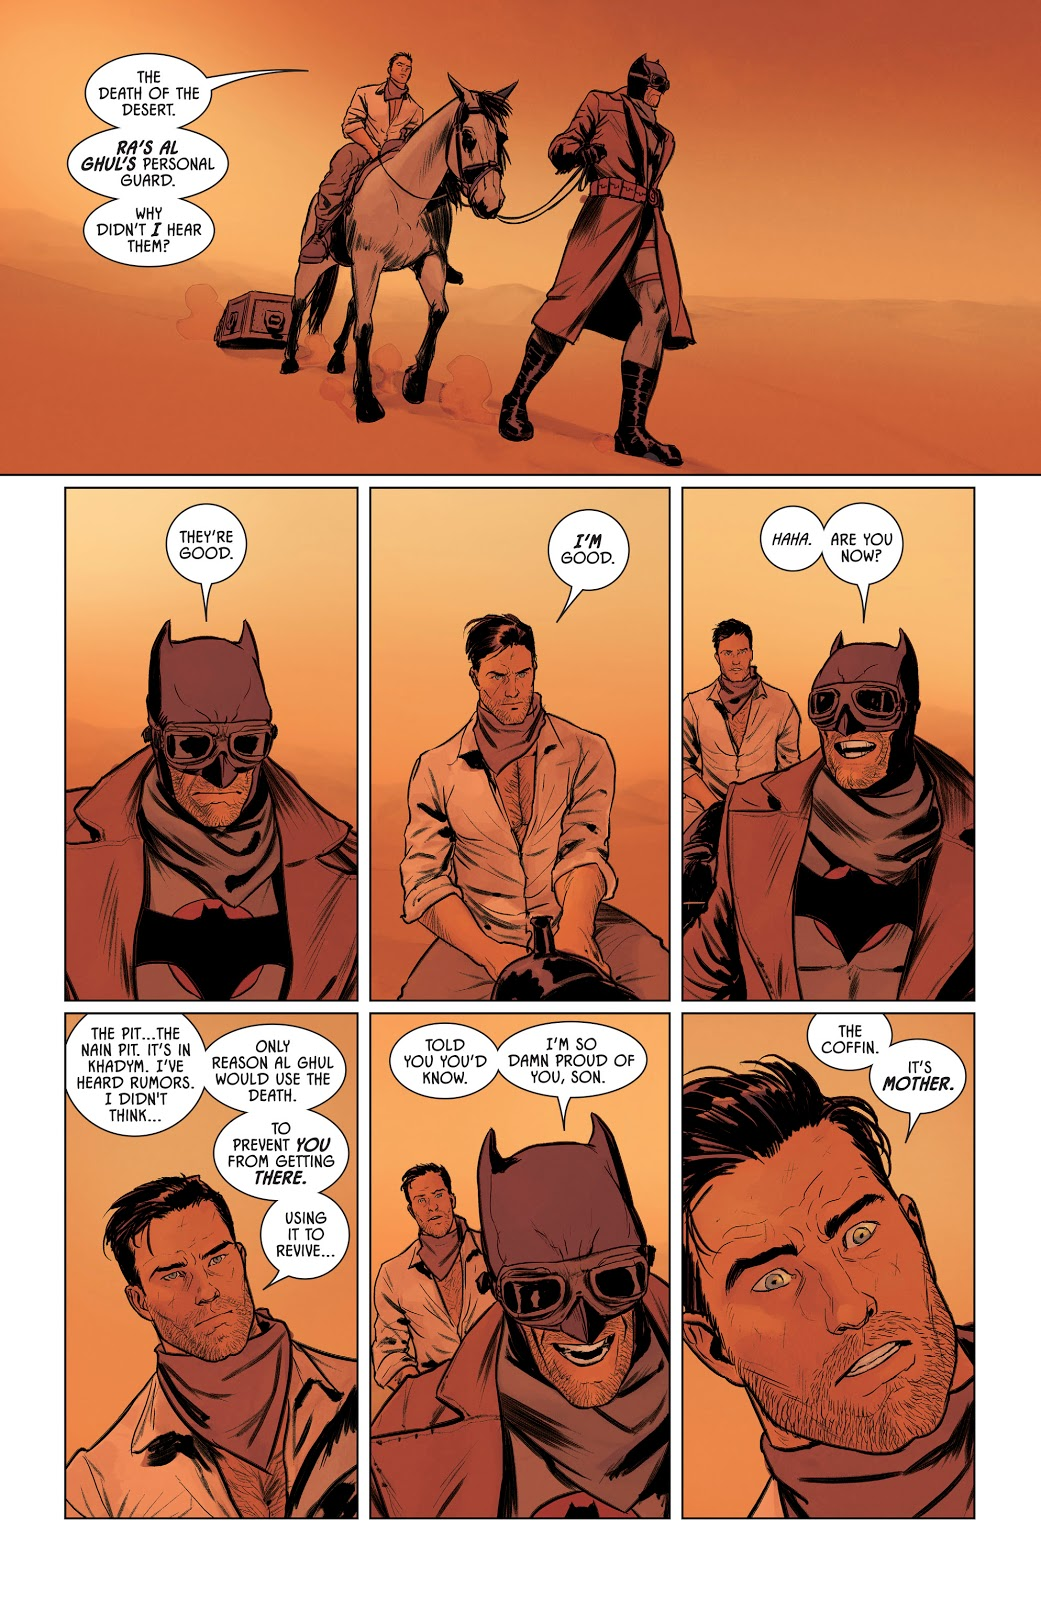 Thomas Wayne Batman VS Death Of The Desert